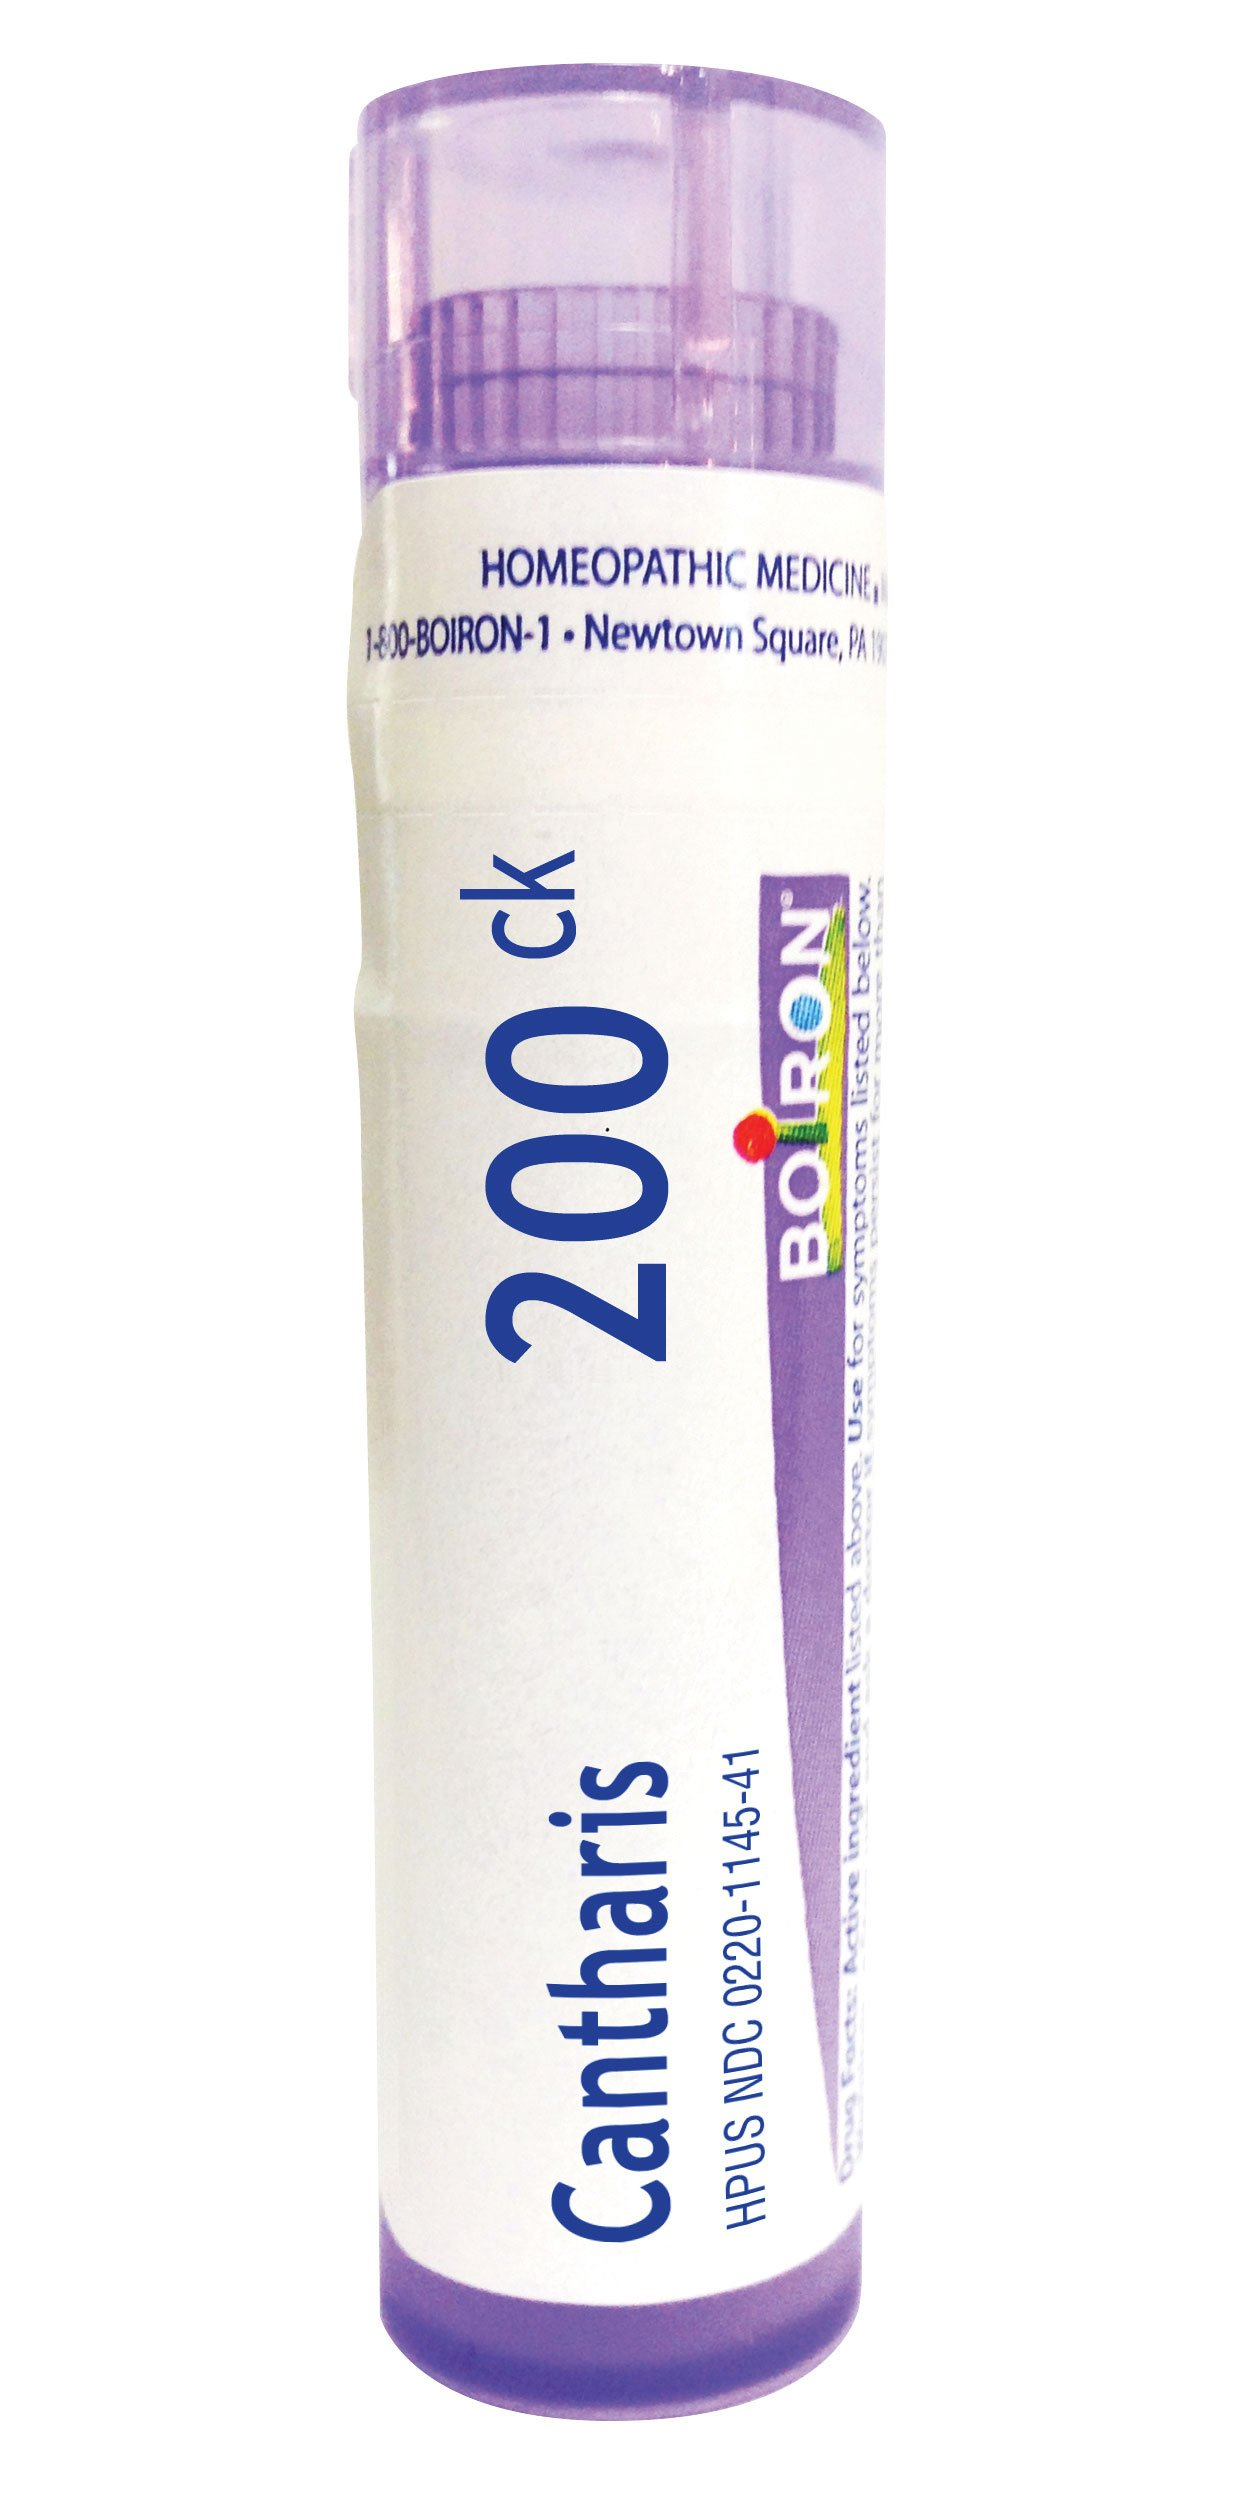 Boiron Cantharis 200C, 80 Pellets, Homeopathic Medicine for Blisters and Bladder Infections